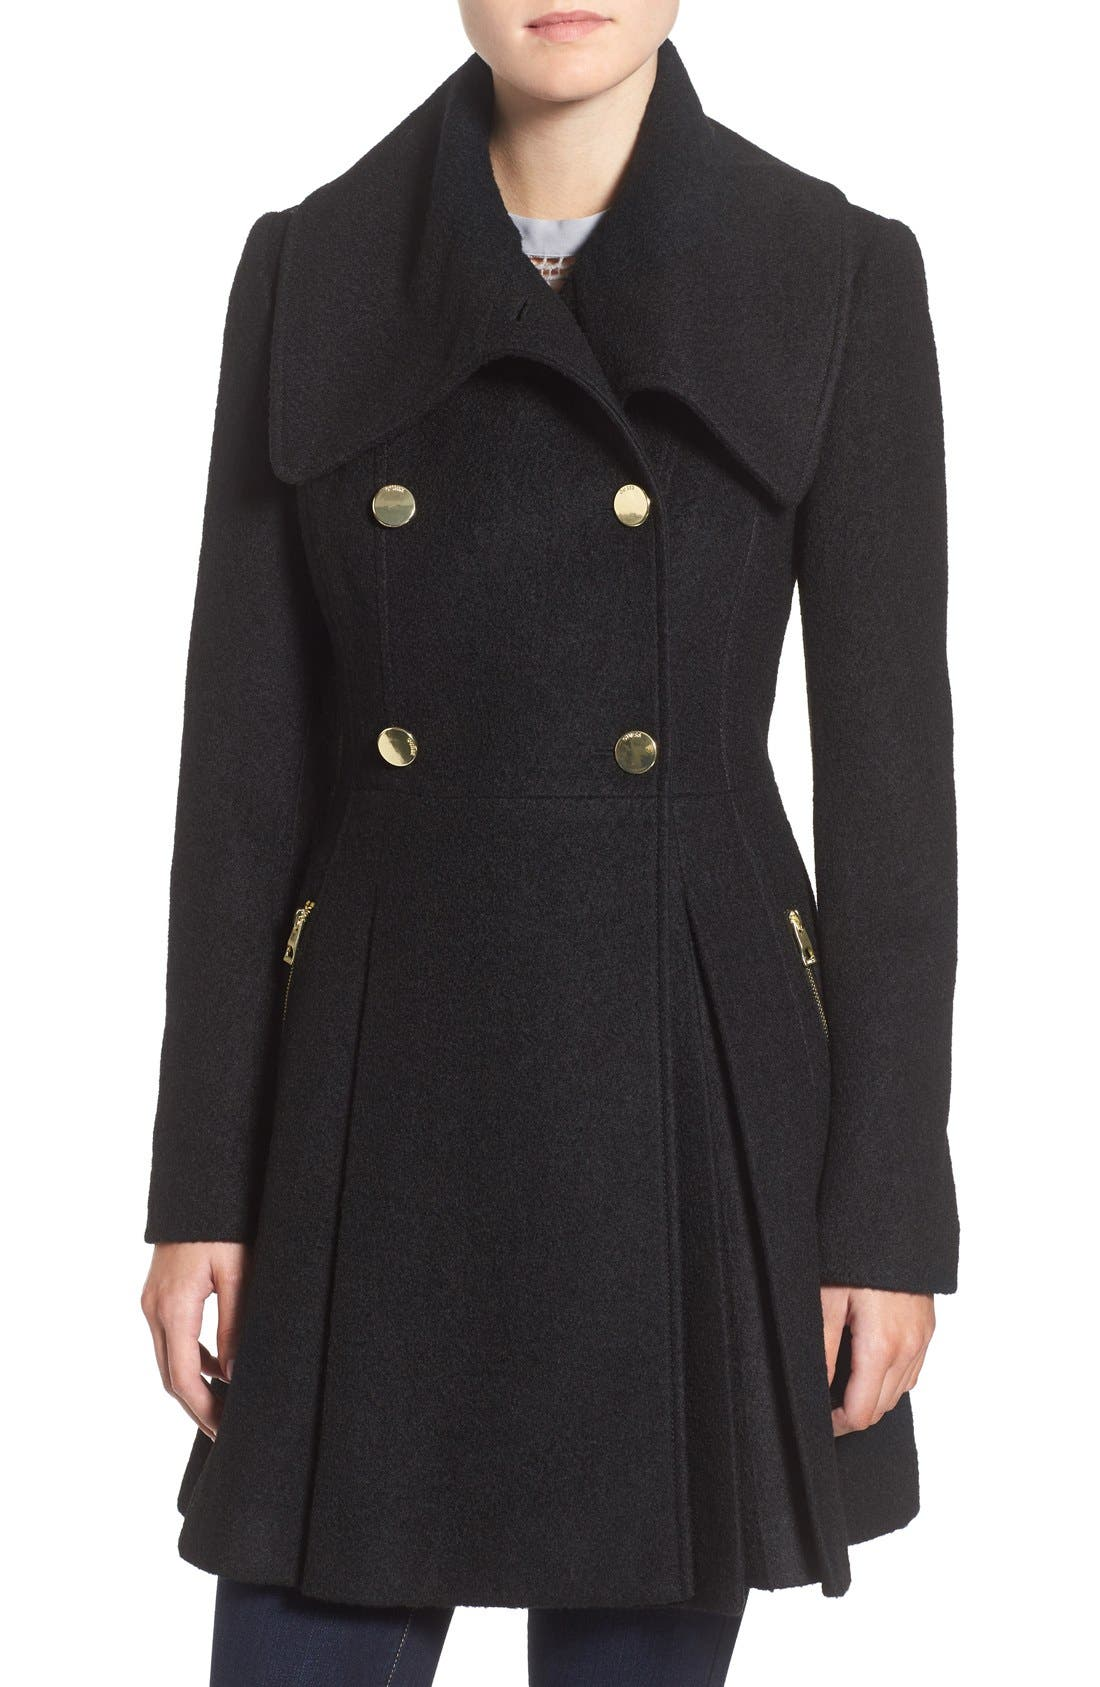 Alternate Image 1 Selected - GUESS Envelope Collar Double Breasted Coat (Regular & Petite)